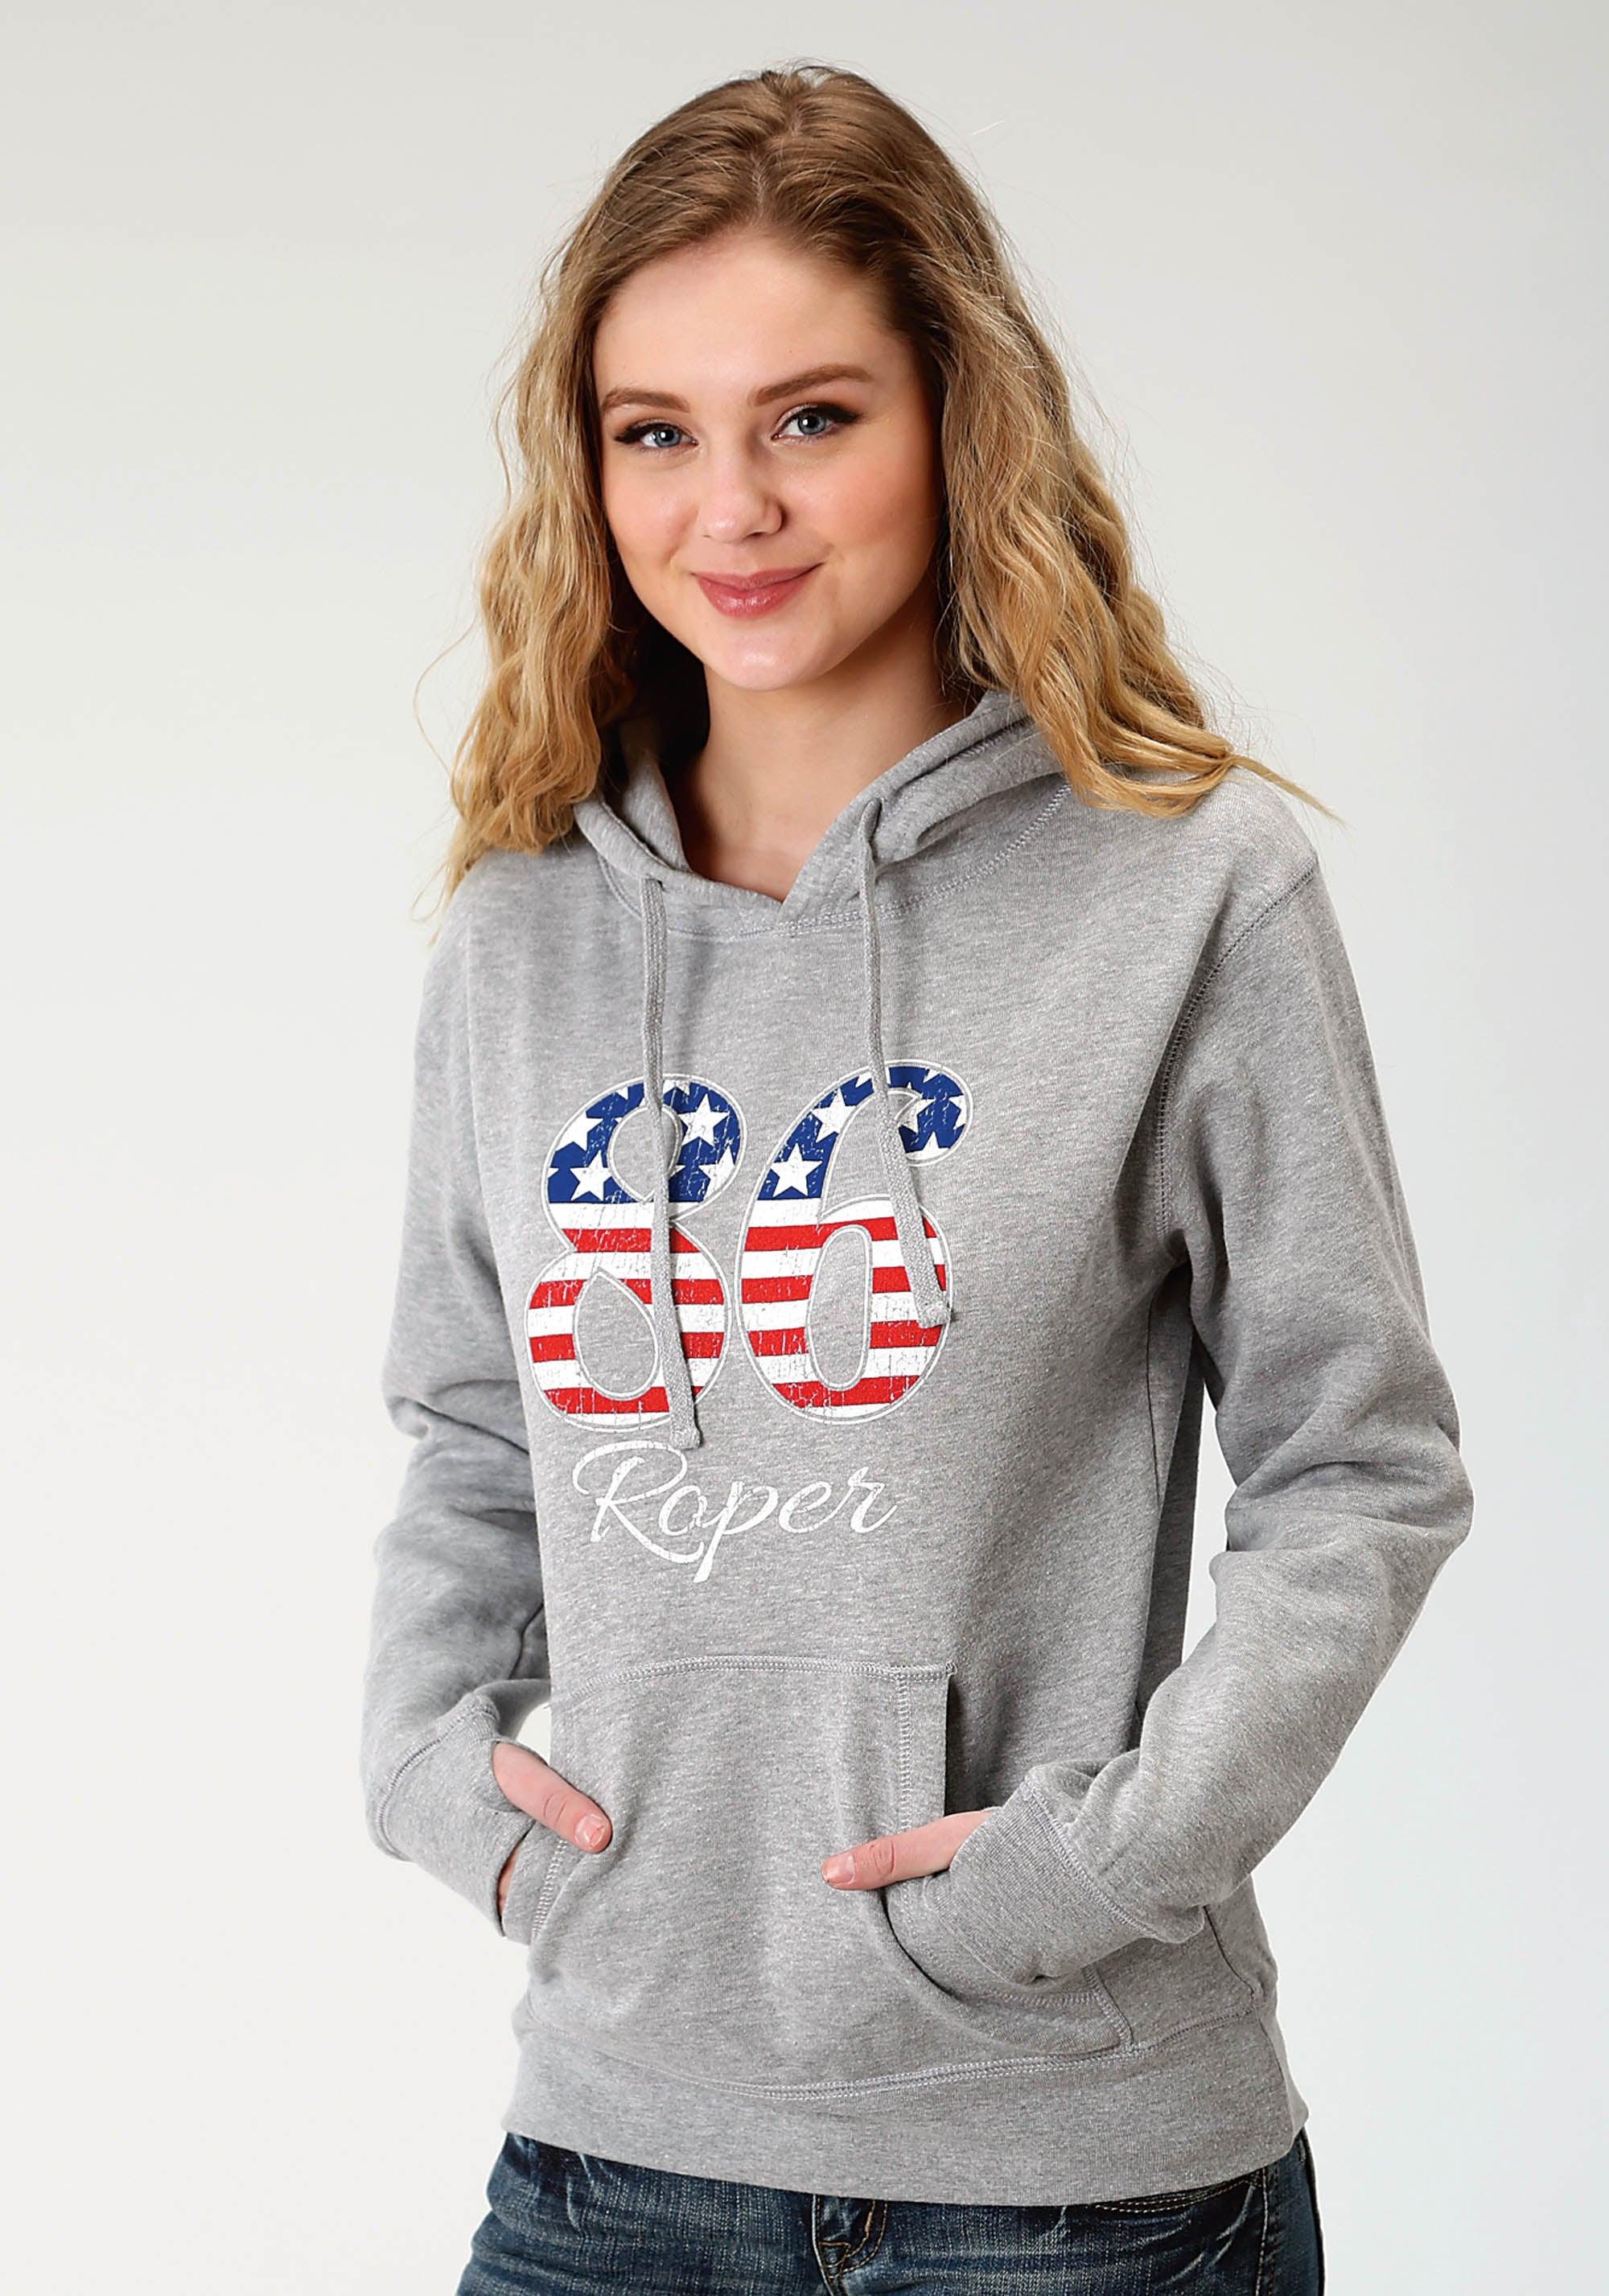 ROPER WOMENS GREY ROPER AMERICAN 86 SCREEN PRINT ROPER LADIES SWEATSHIRT JACKET